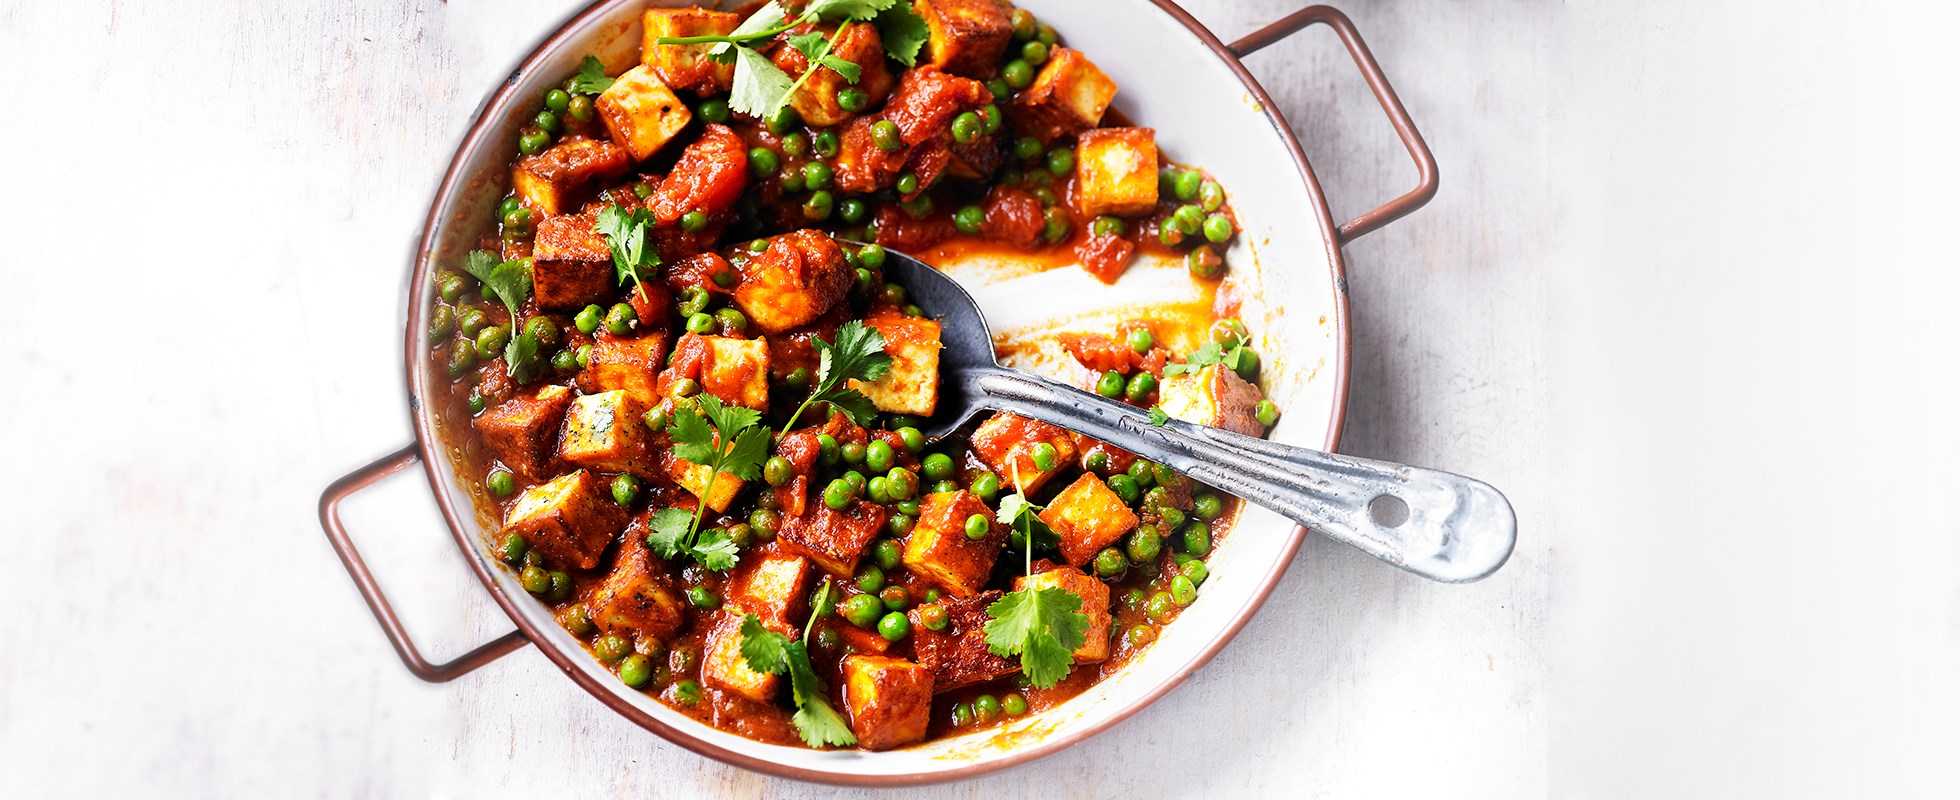 Best curries - mutter paneer